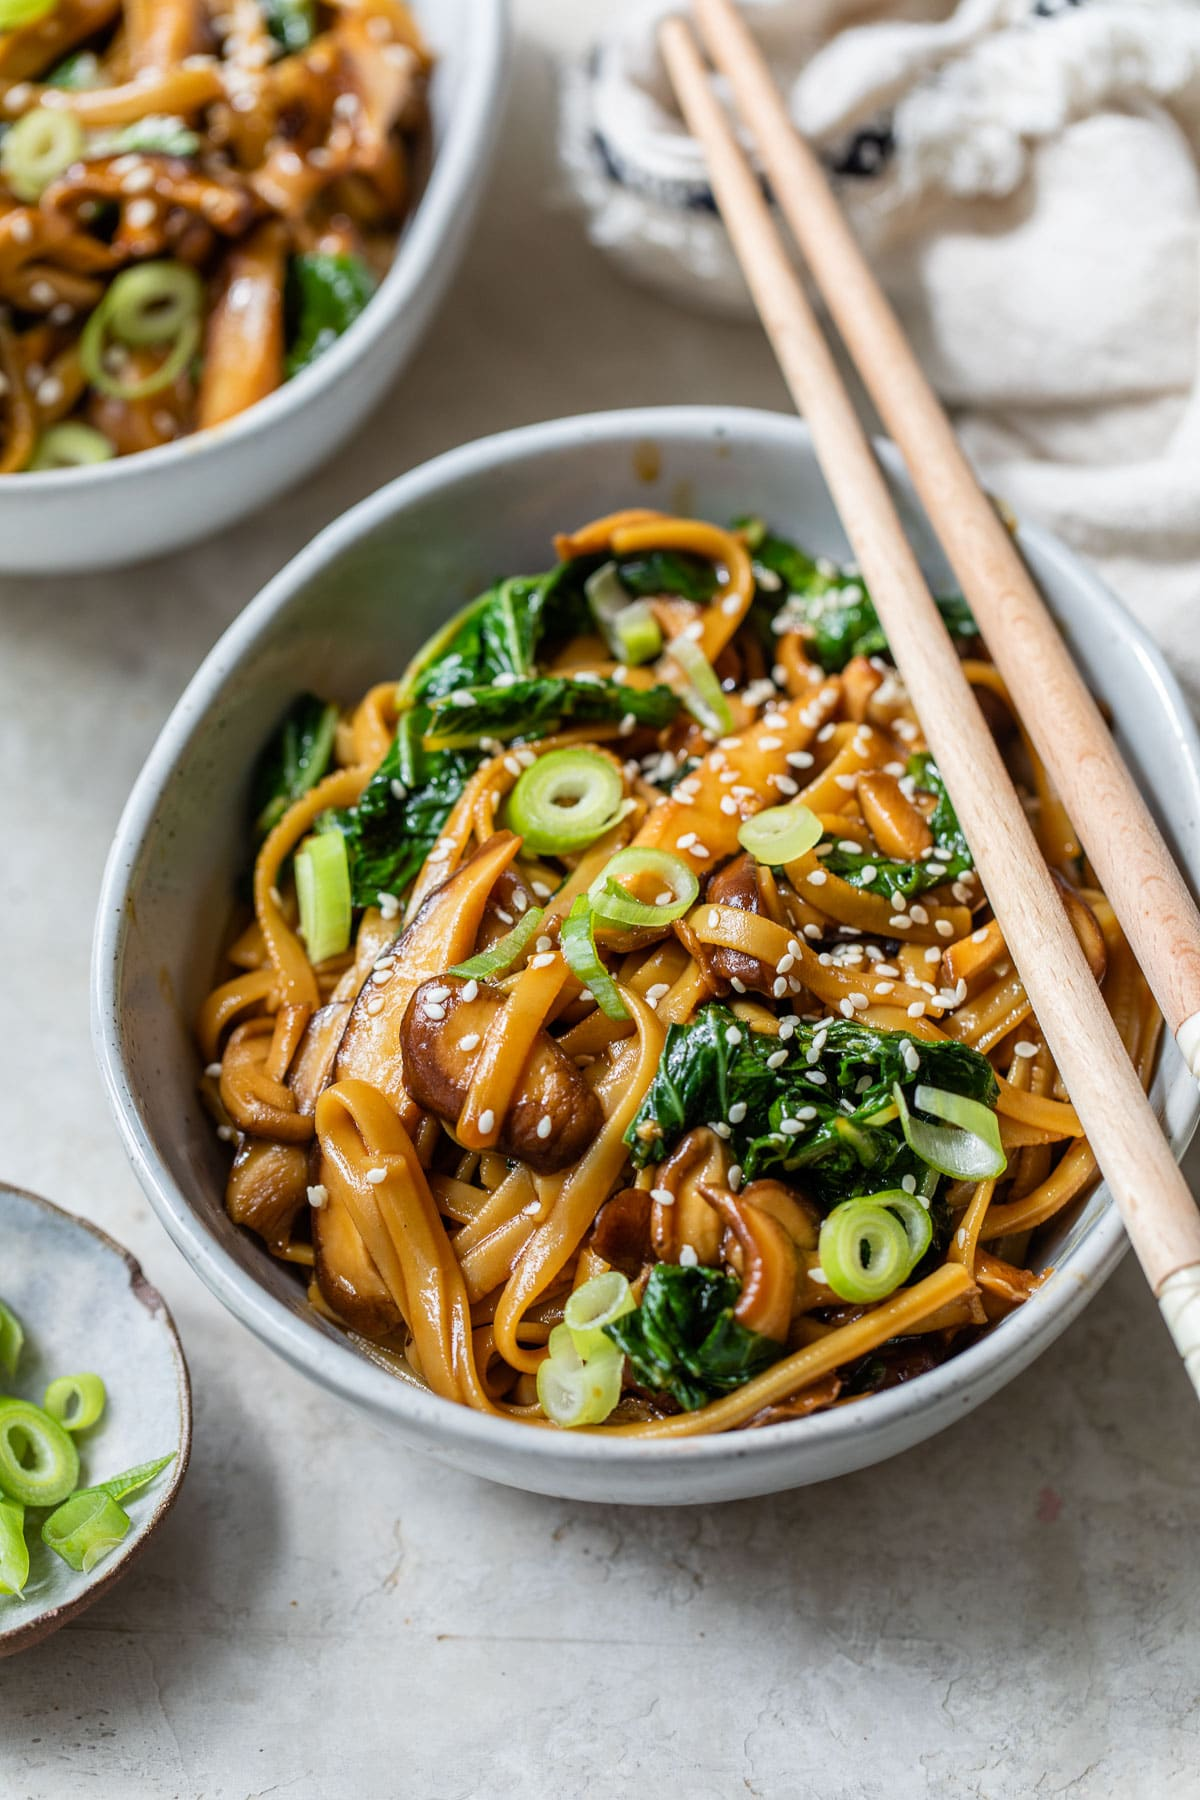 a bowl with long noodles, mushrooms and bok choy